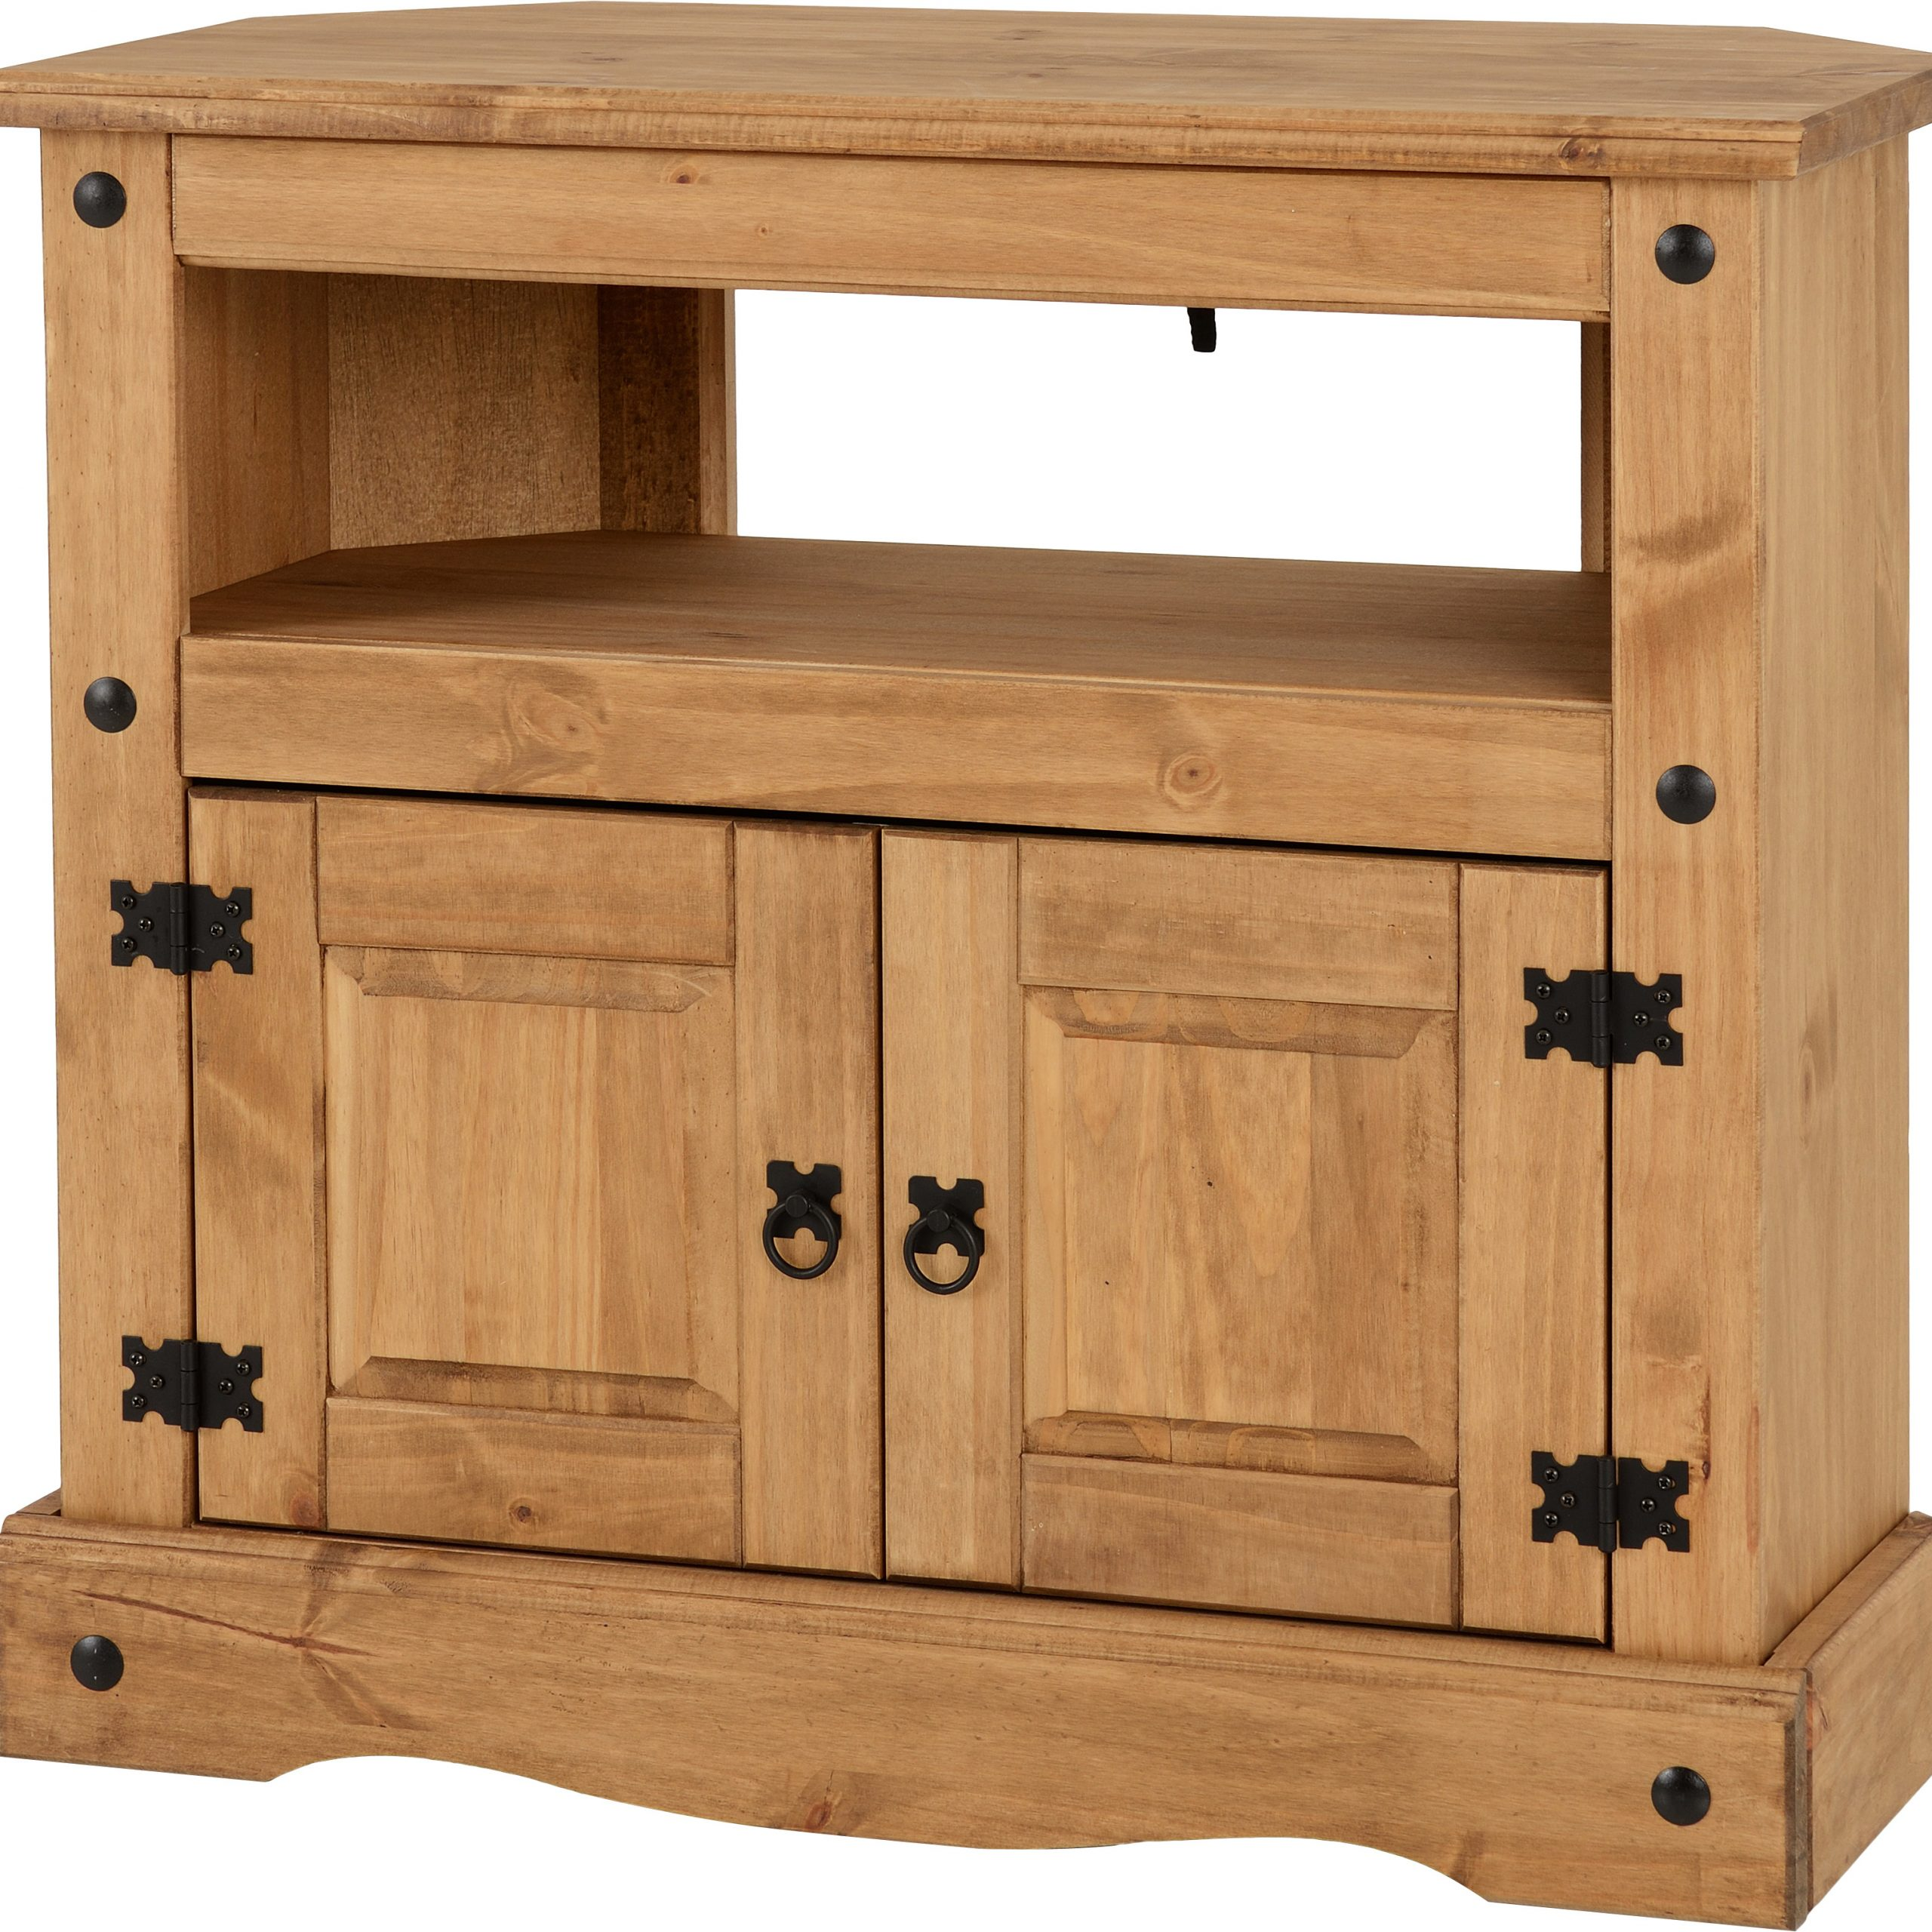 Corona Pine 2 Door 1 Shelf Flat Screen Tv Unit Stands With Regard To Most Popular Wholesale Beds And Furniture (View 2 of 10)